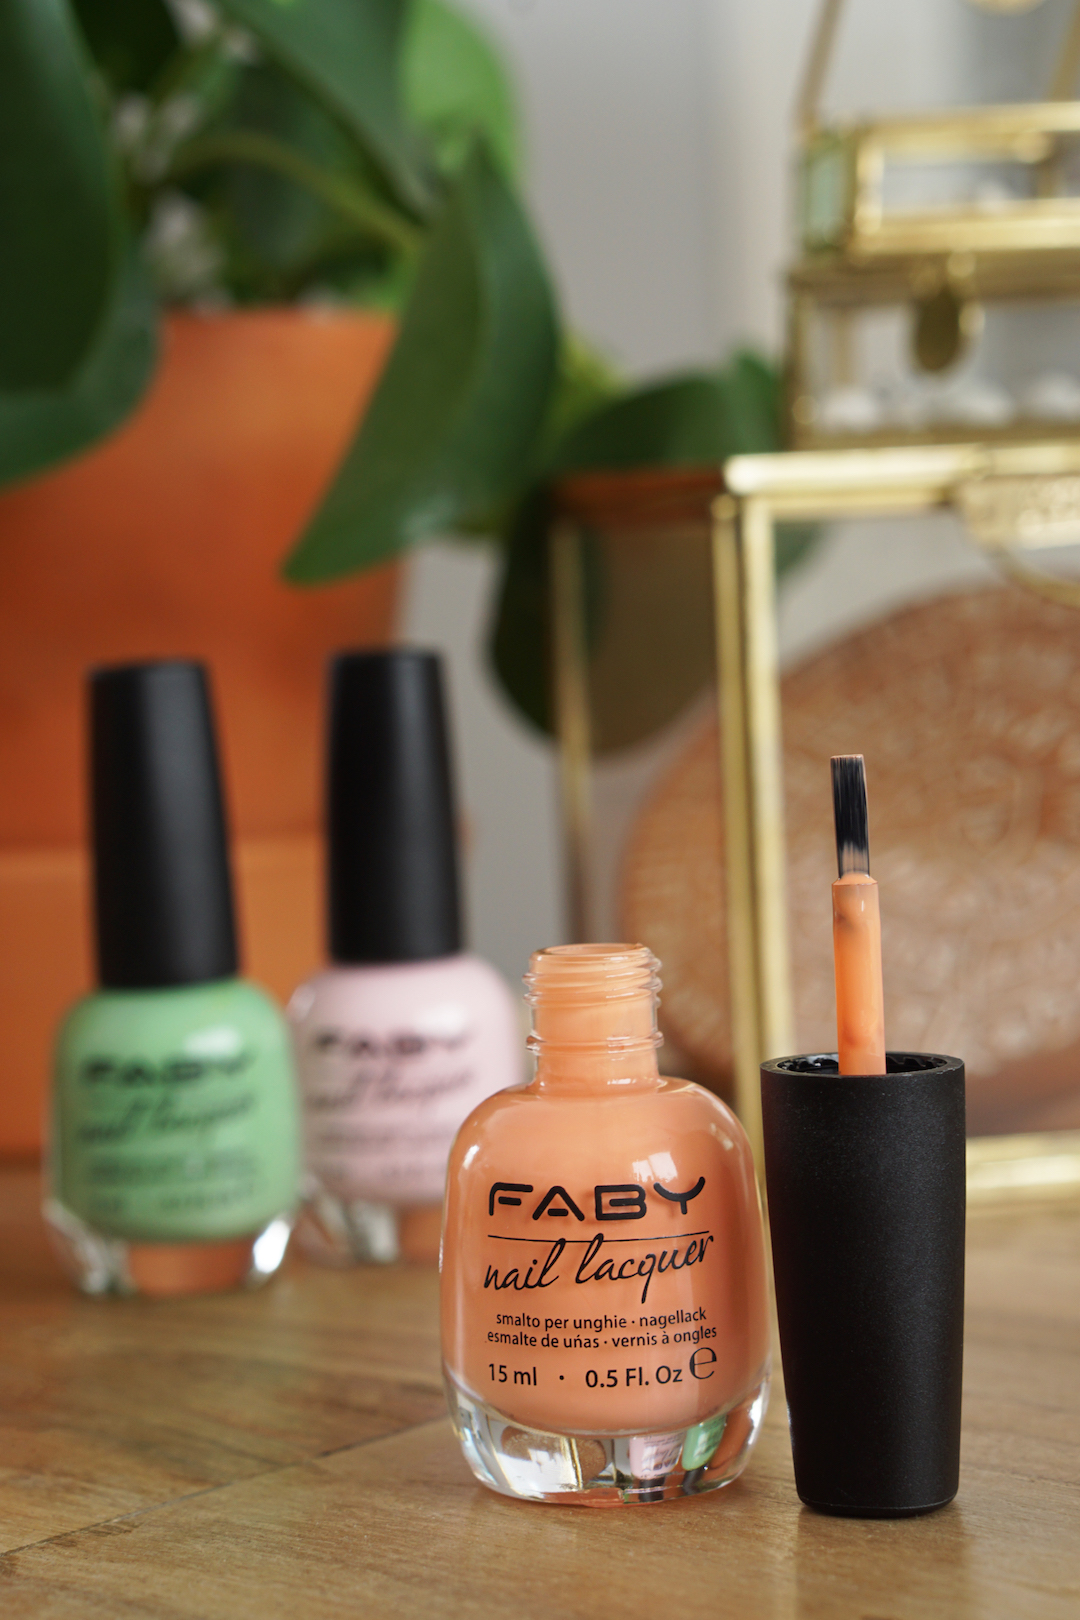 FABY, I'M FABY nagellak swatches